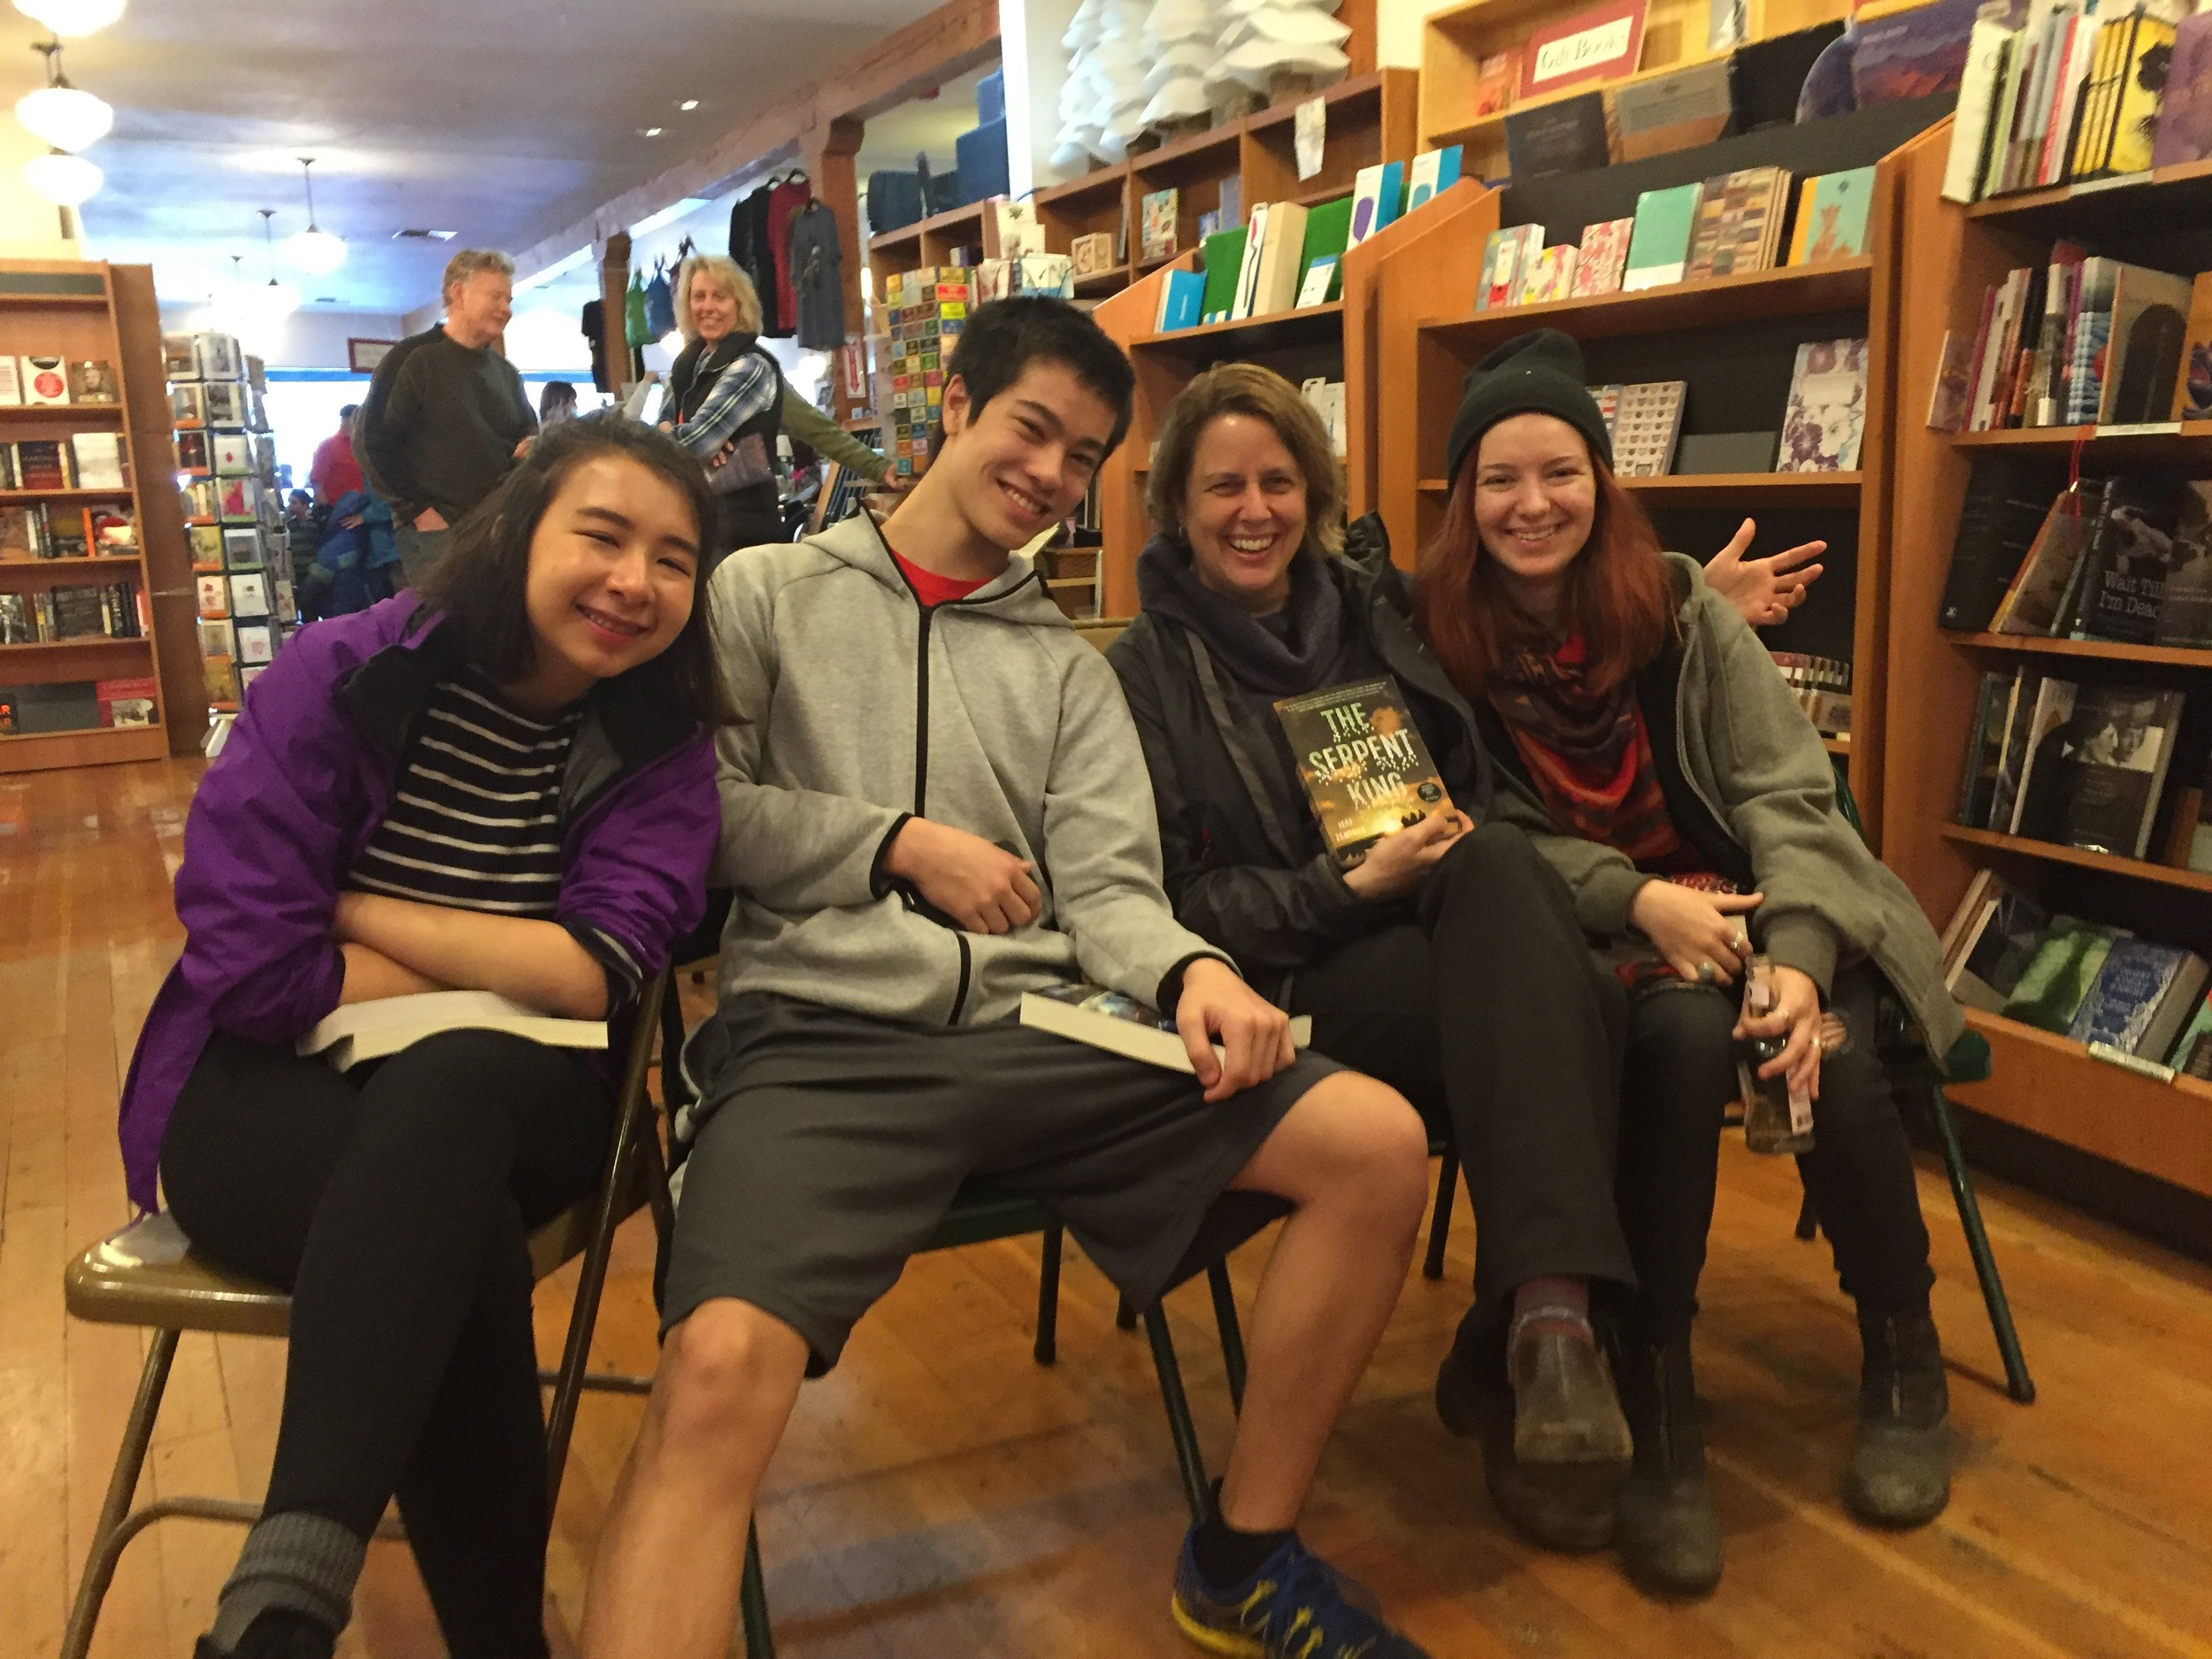 The Teen Advisory Board at Eagle Harbor Book Co. in Winslow, WA. And me giving a little shout out to  The Serpent King,  by Jeff Zentner. (Photo Credit: Victoria Irwin)